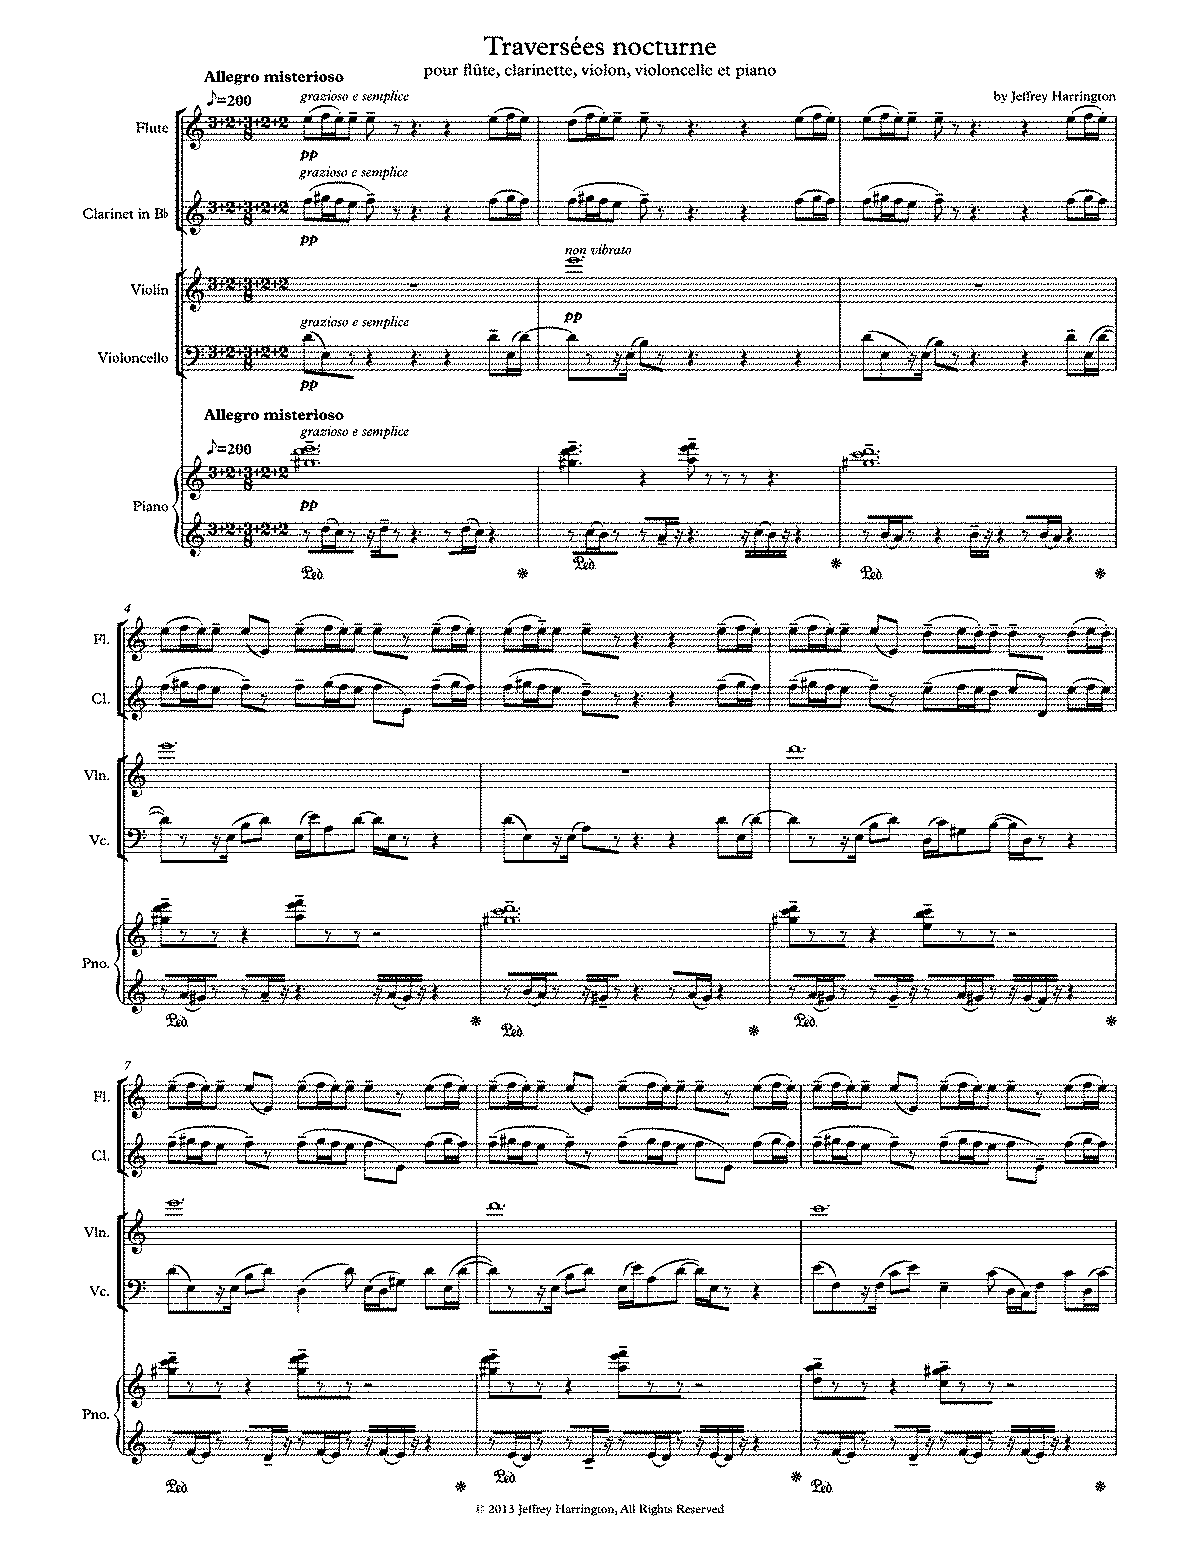 PMLP461901-mixedQuintet-1x18-finished-1j - Full Score.pdf